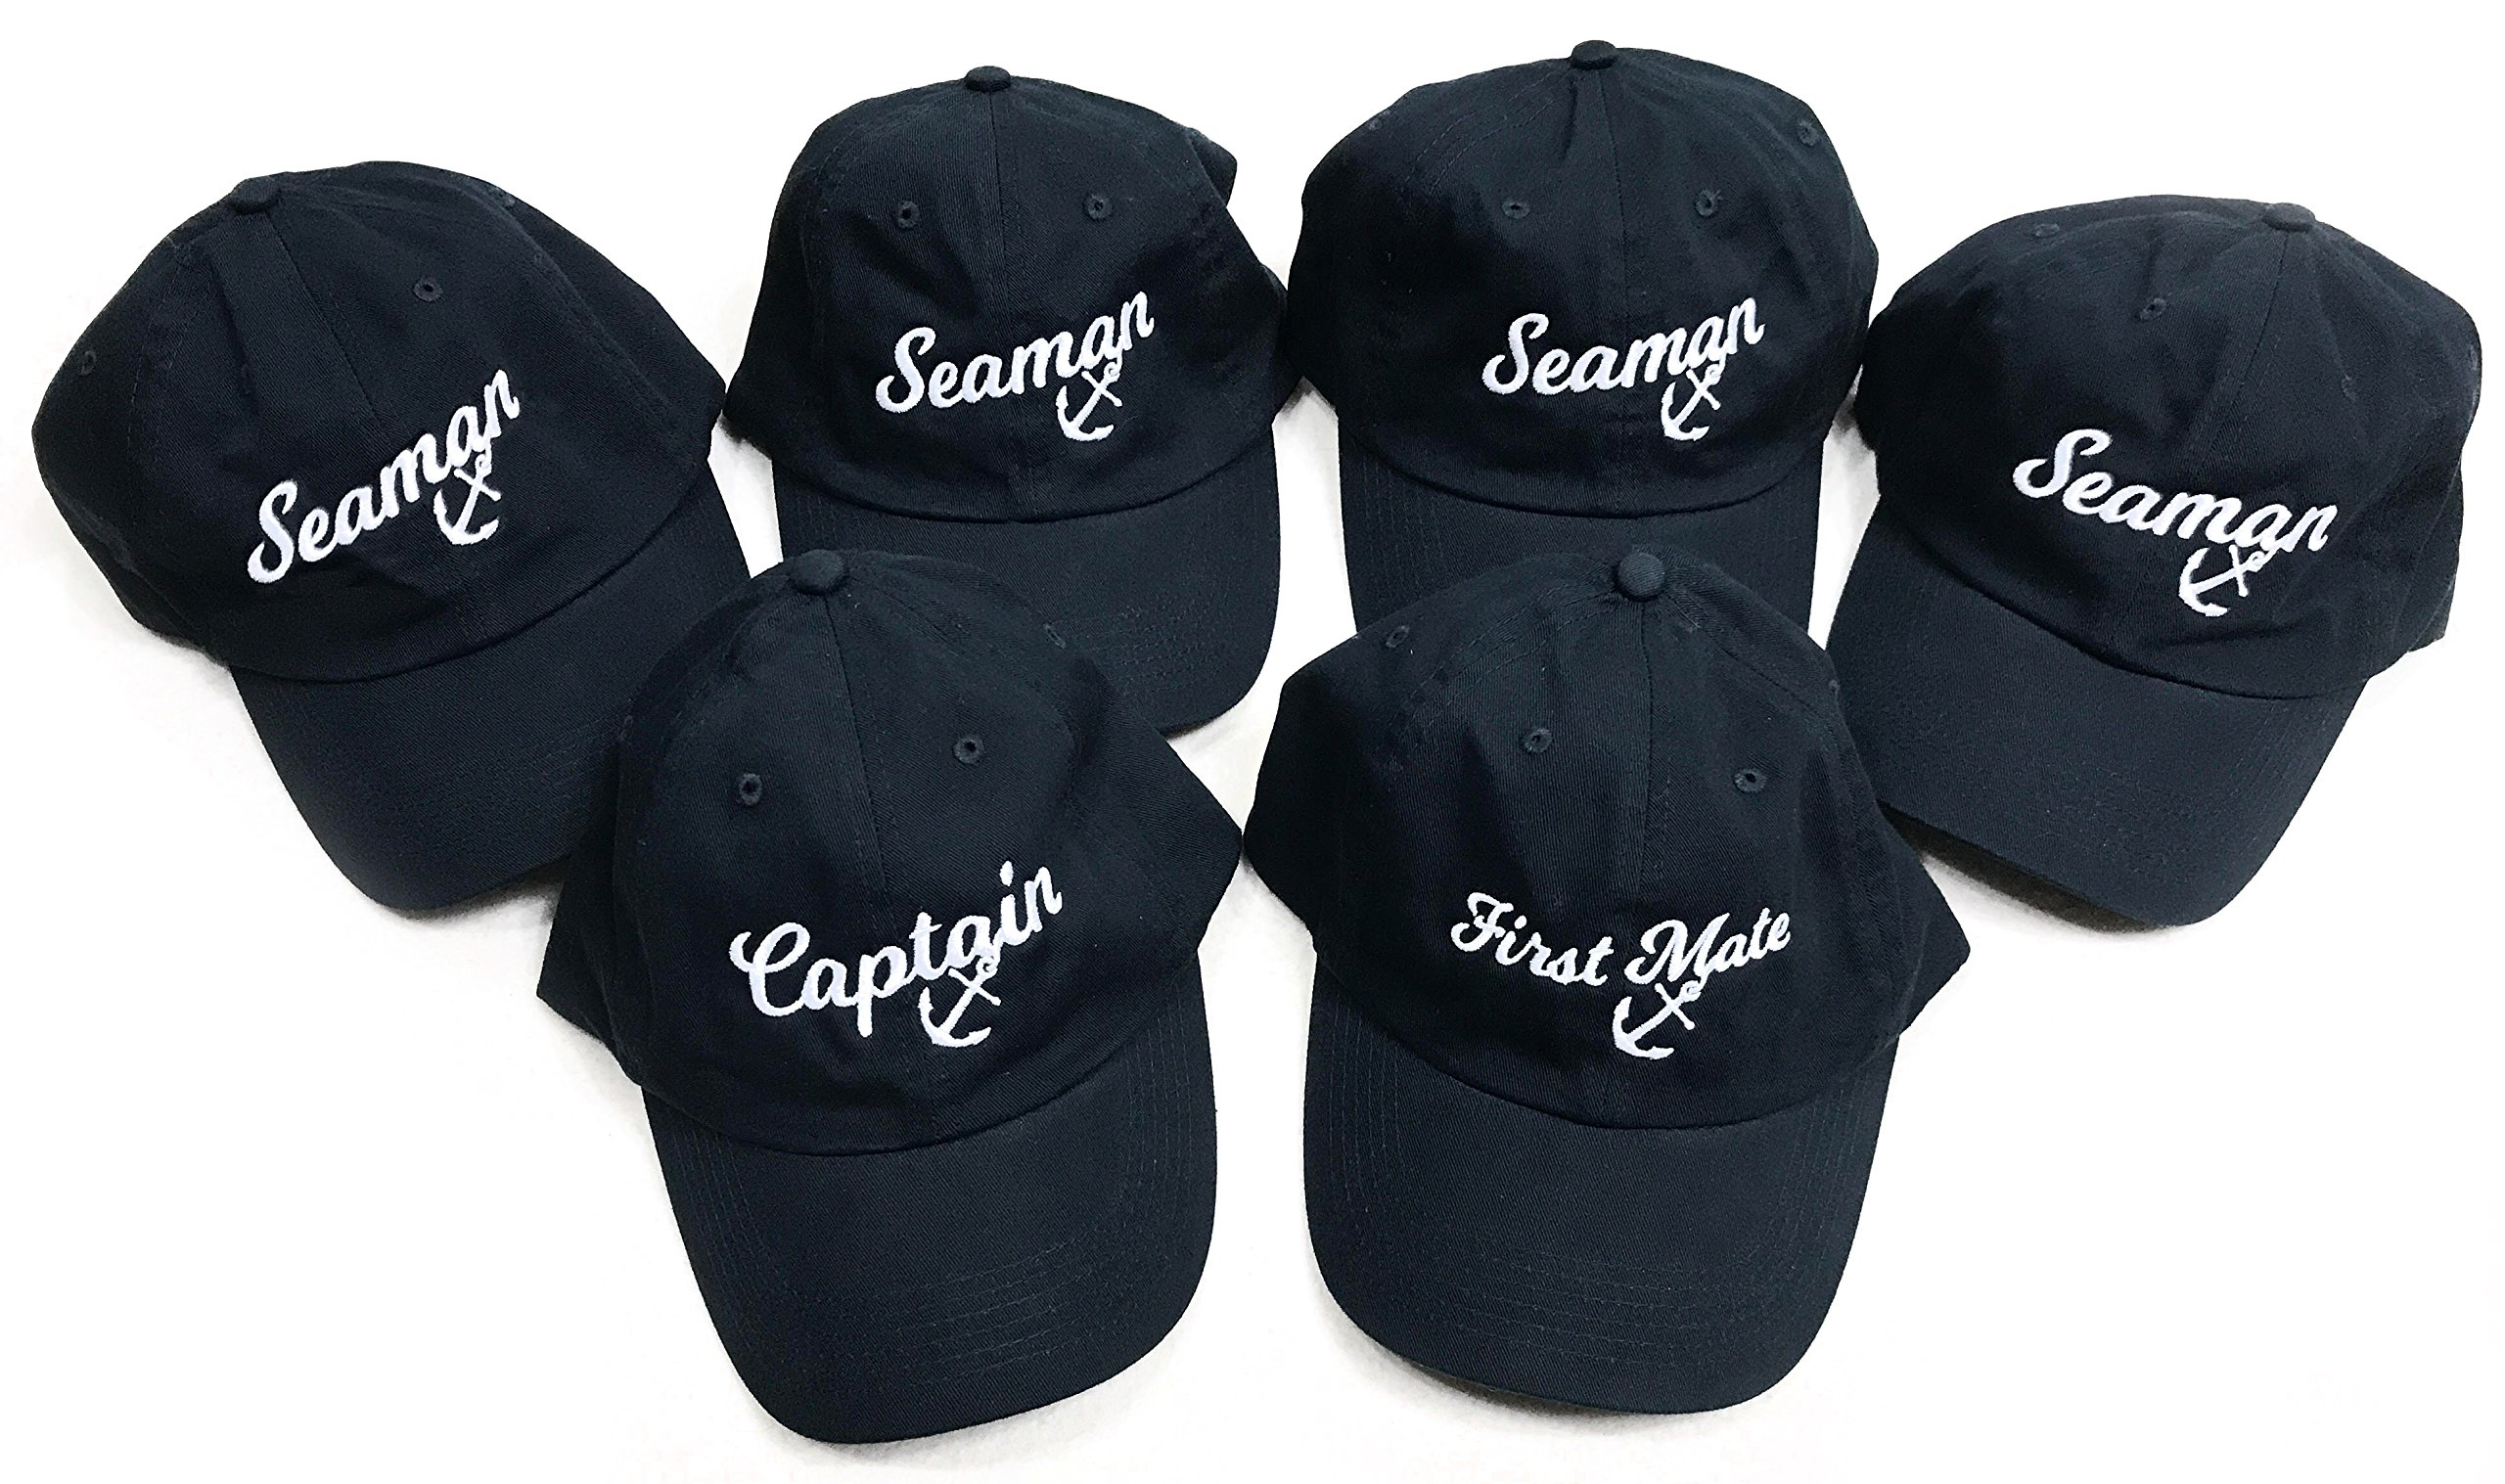 Captain, First Mate, 4 Seamen | Matching Boat Crew Boating Baseball Caps Navy by Ann Arbor T-shirt Co.